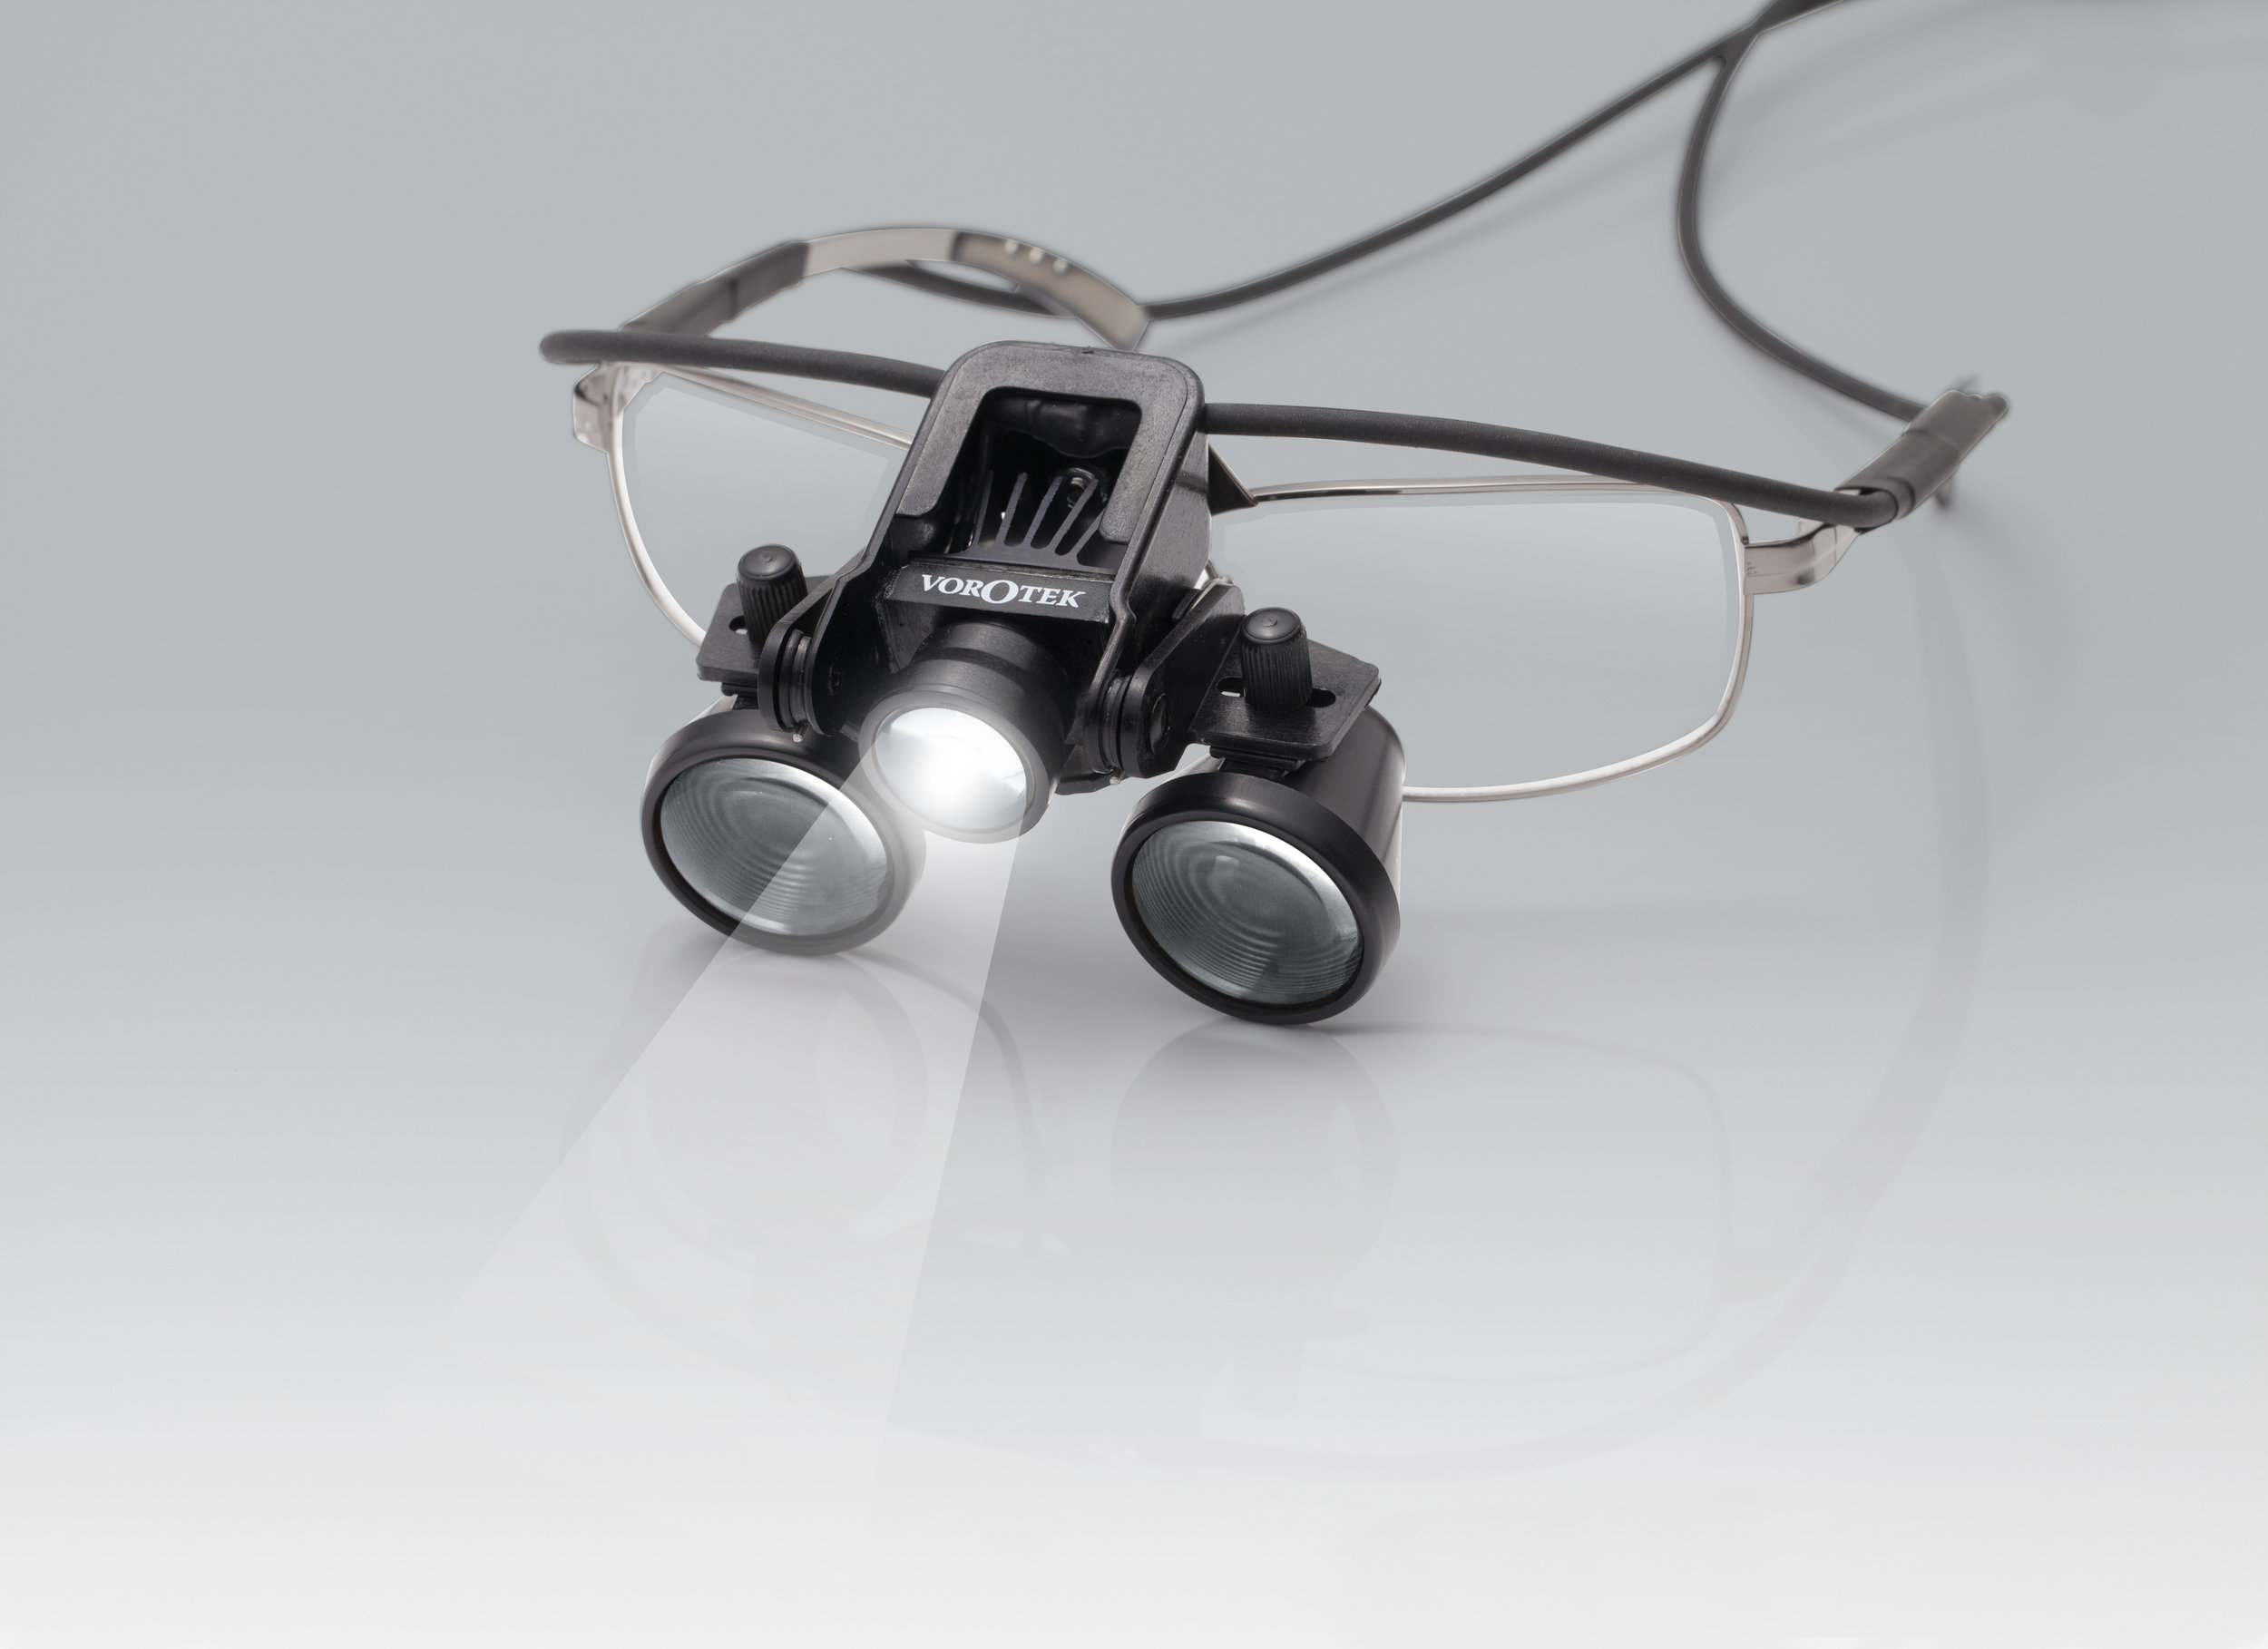 SpecFrame Model - Can be fitted with the user's prescription lenses. Ideal for individual use.